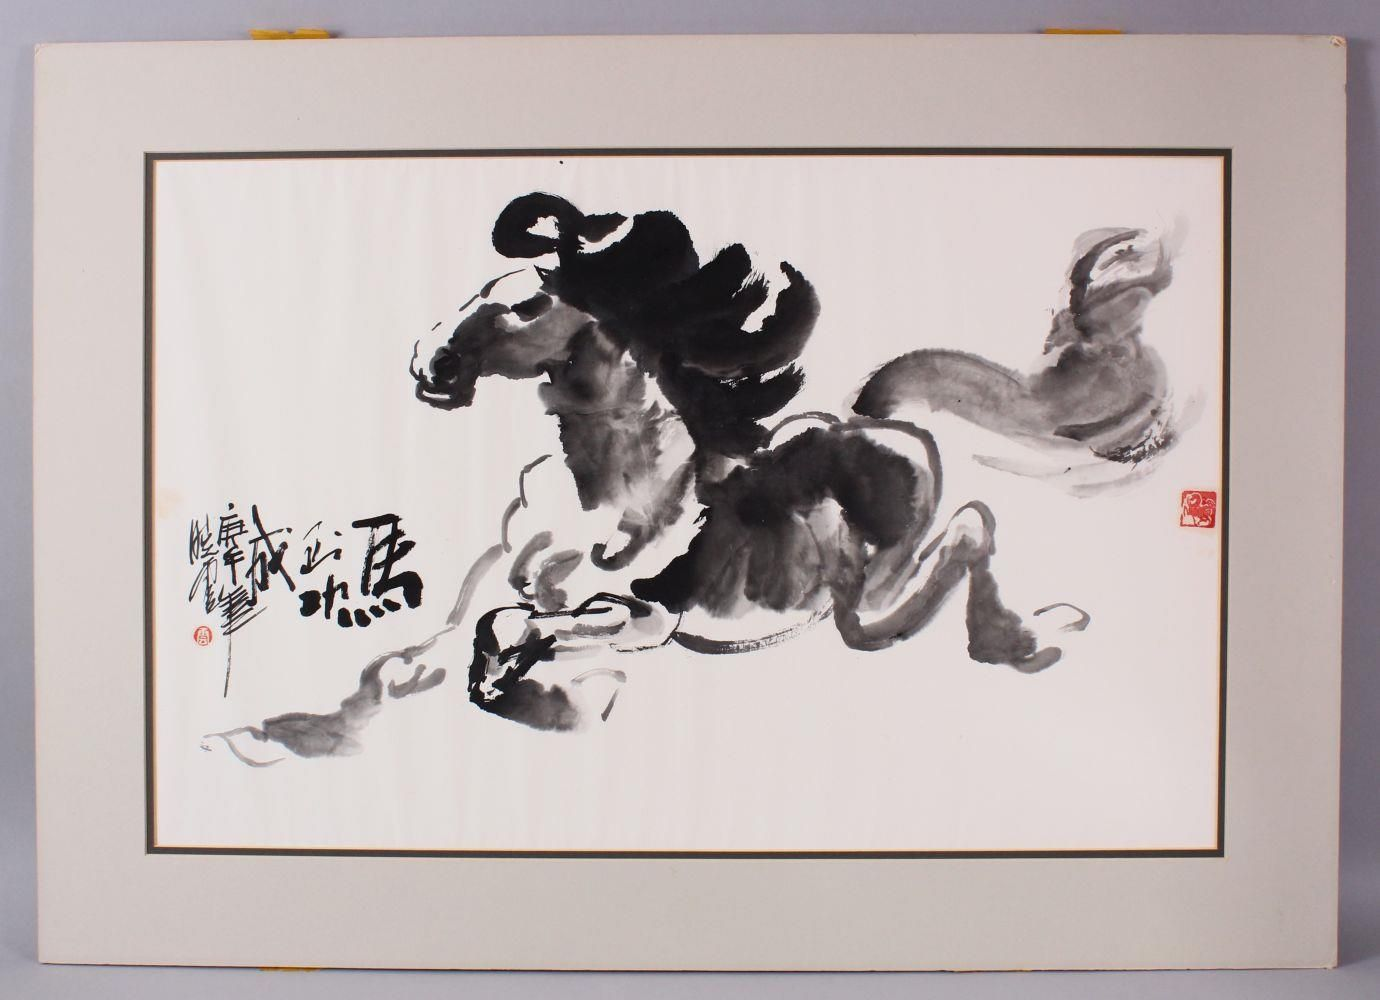 A CHINESE INKWORK PAINTING OF A STYLIZED HORSE - MA DAO CHENG GONG, the horse in a a stylized